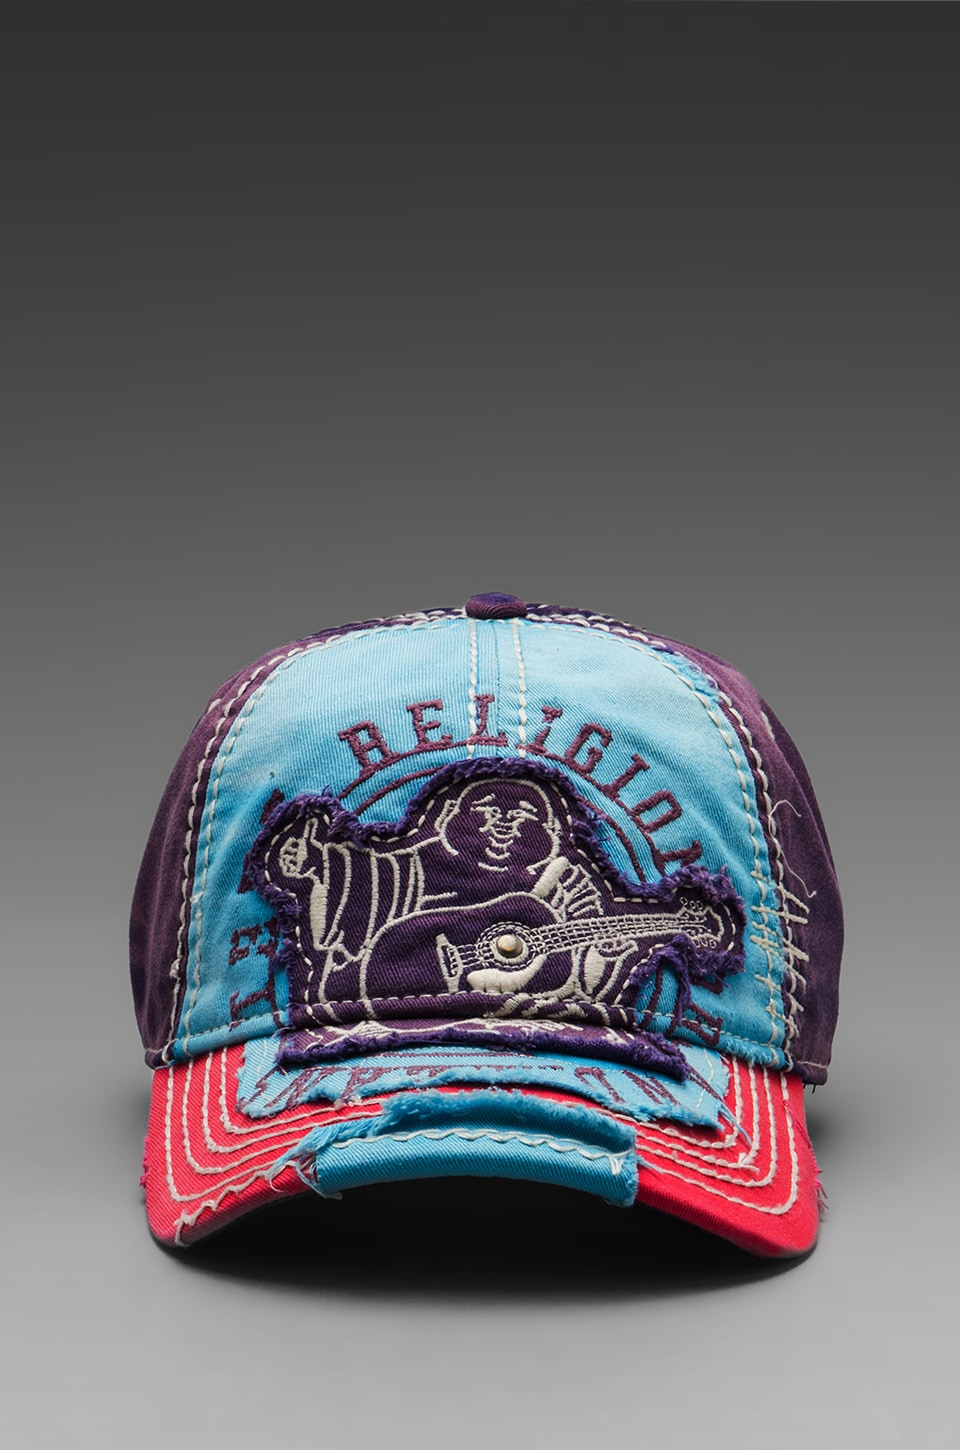 True Religion Big Buddha Cap in Turquoise